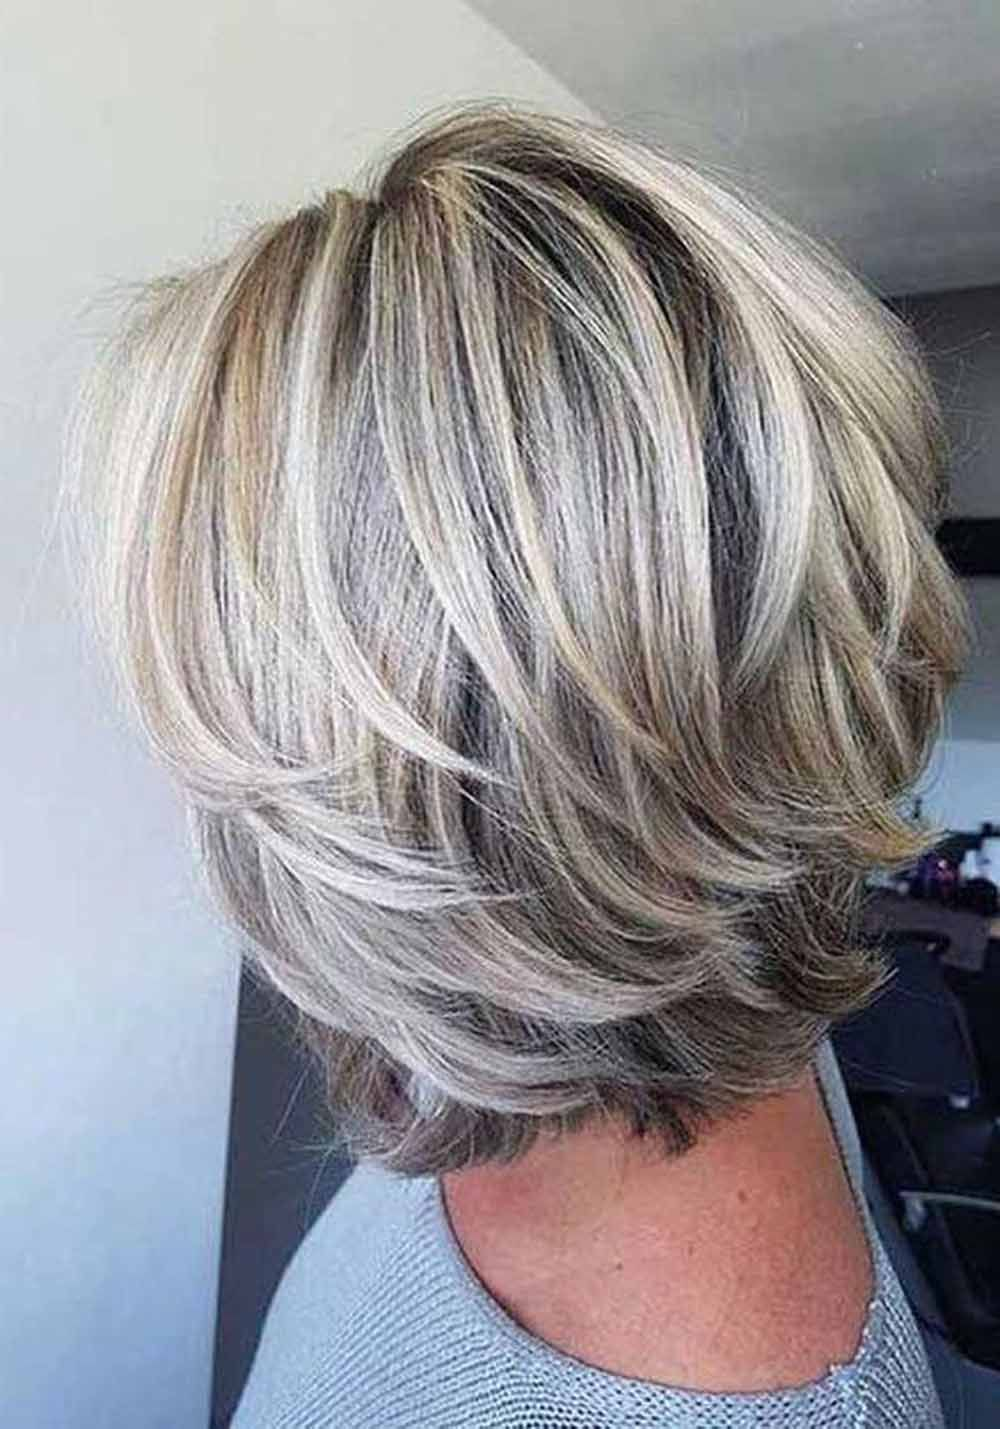 10 Cute Simple Short Layered Hairstyles For The Women Short Layered Hairstyles For Women Are Silver Hair Color Grey Hair Color Gray Hair Highlights